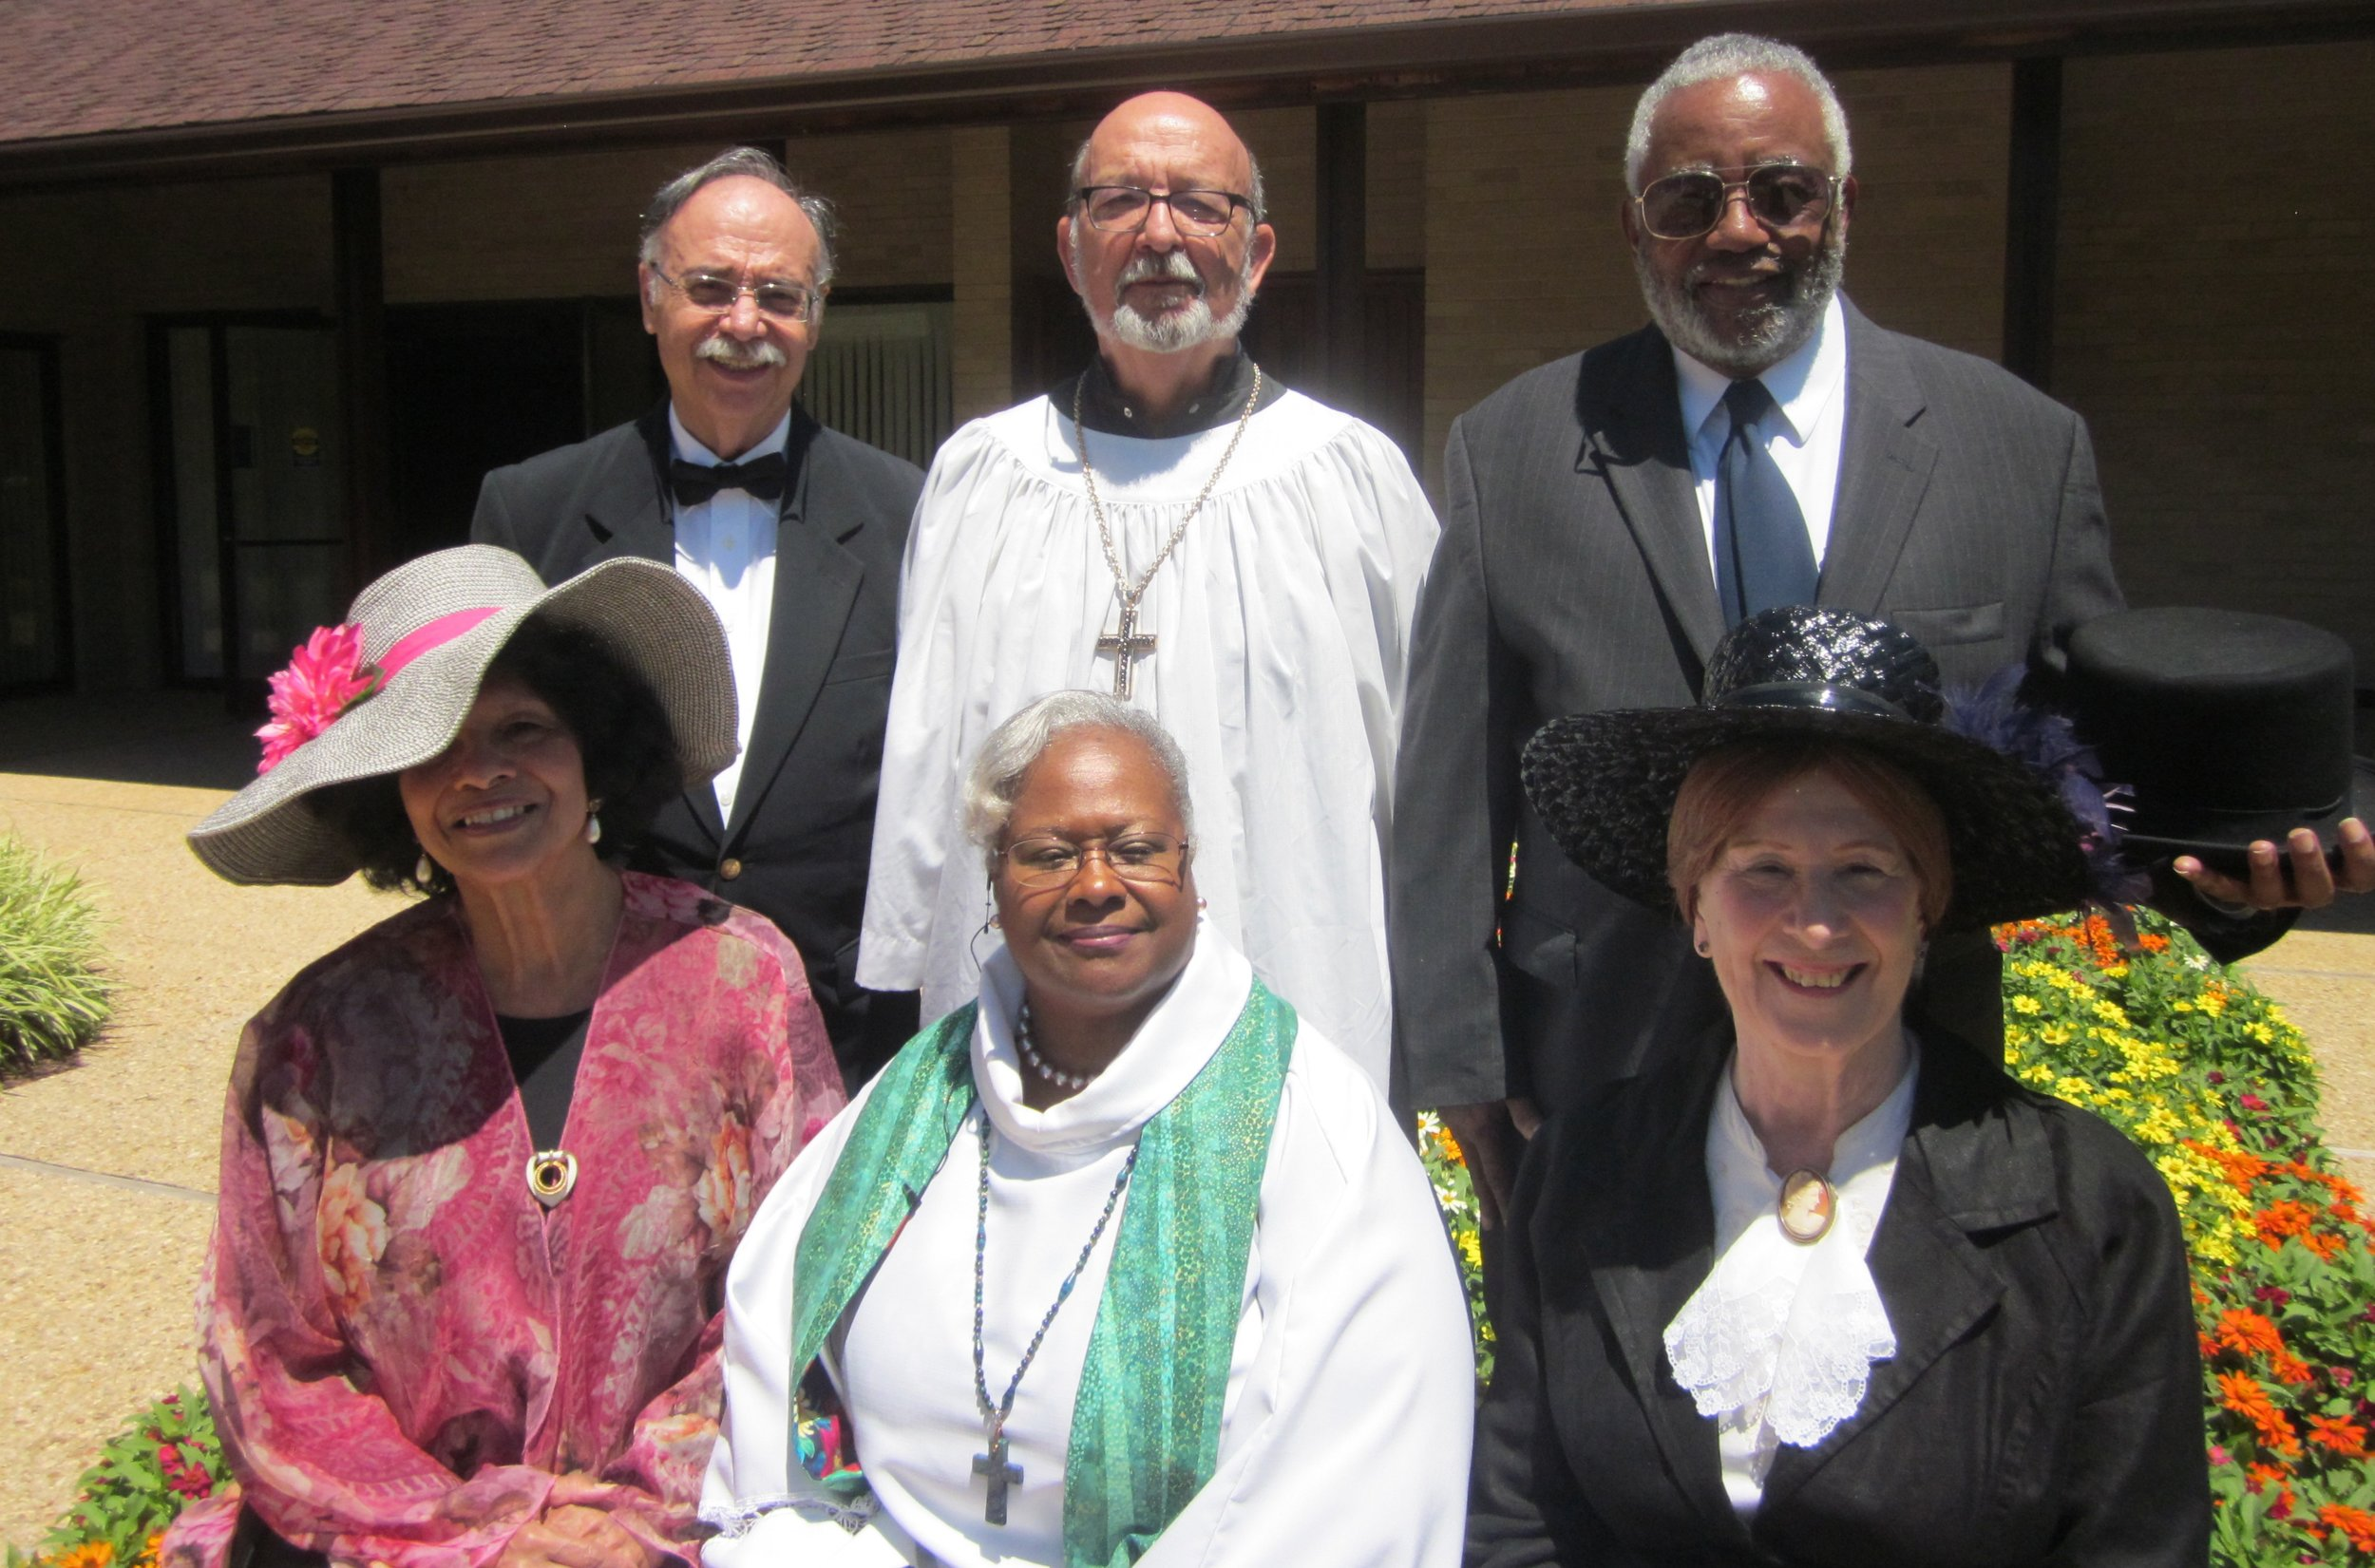 The hymn writers with Rev. Dr. Ramonia Lee